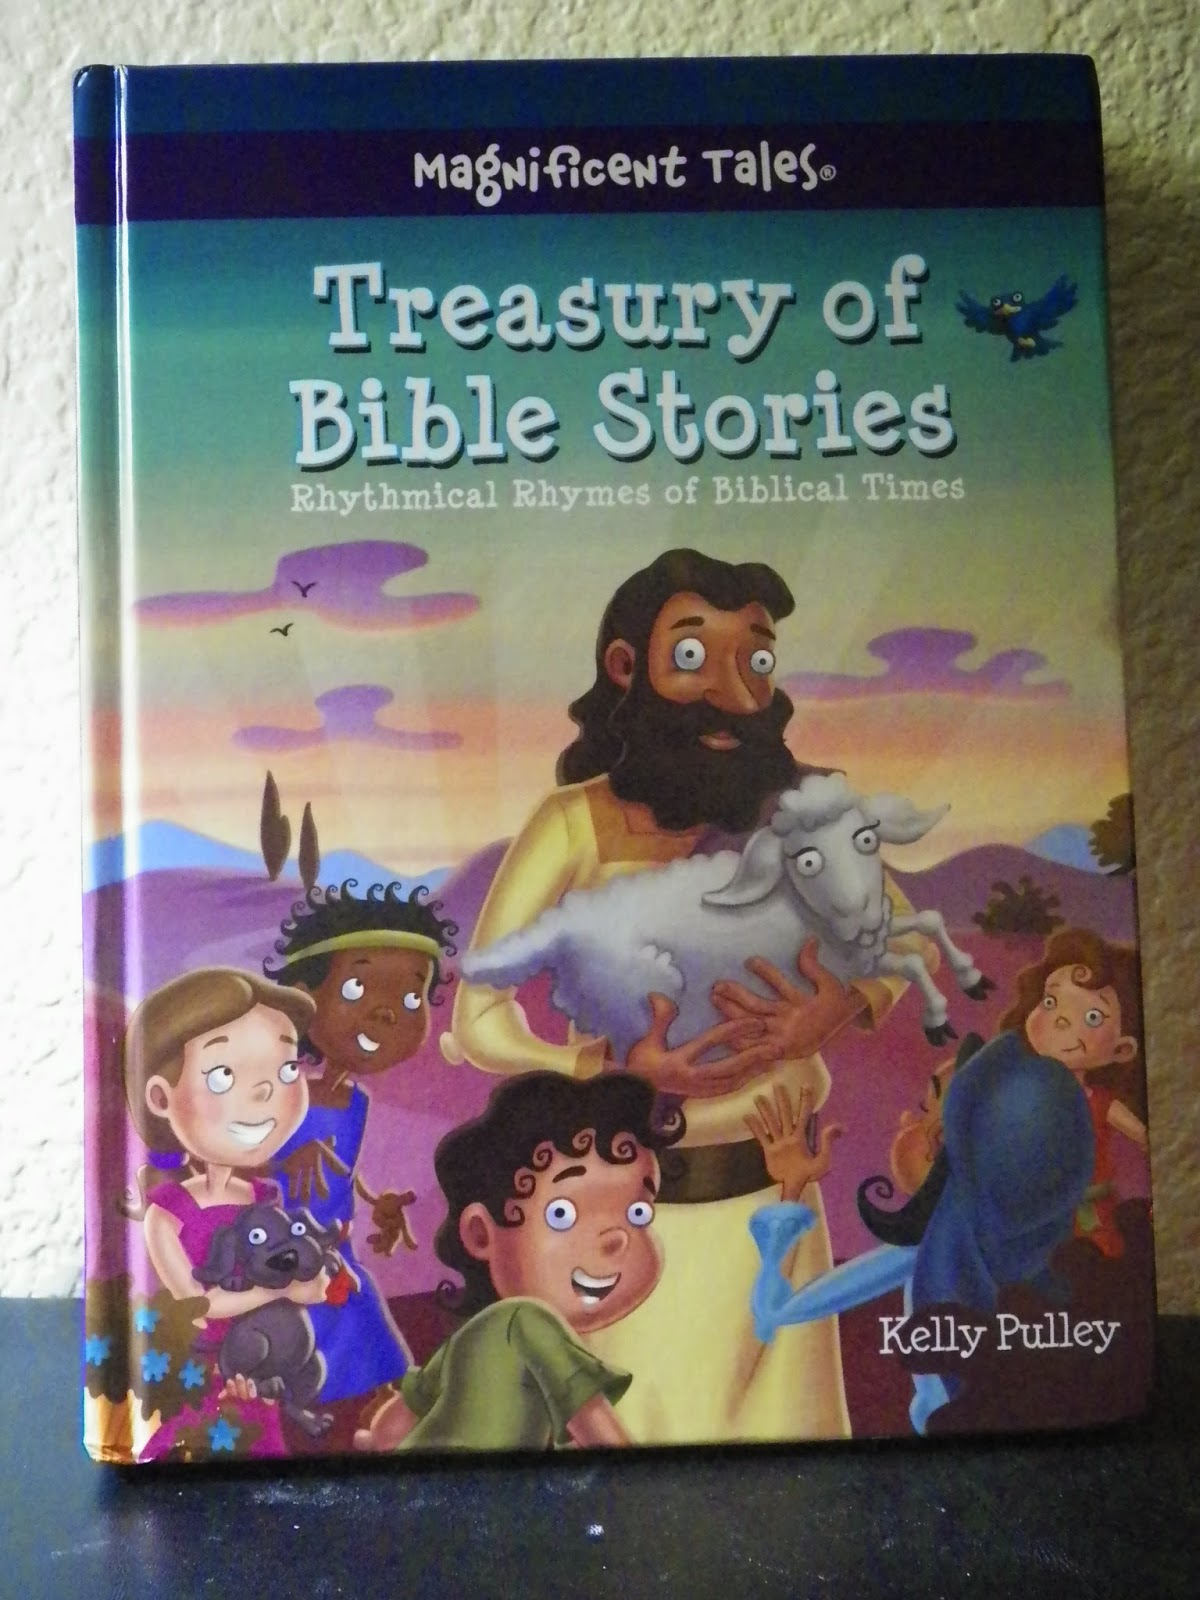 TreasuryofBibleStories.jpg